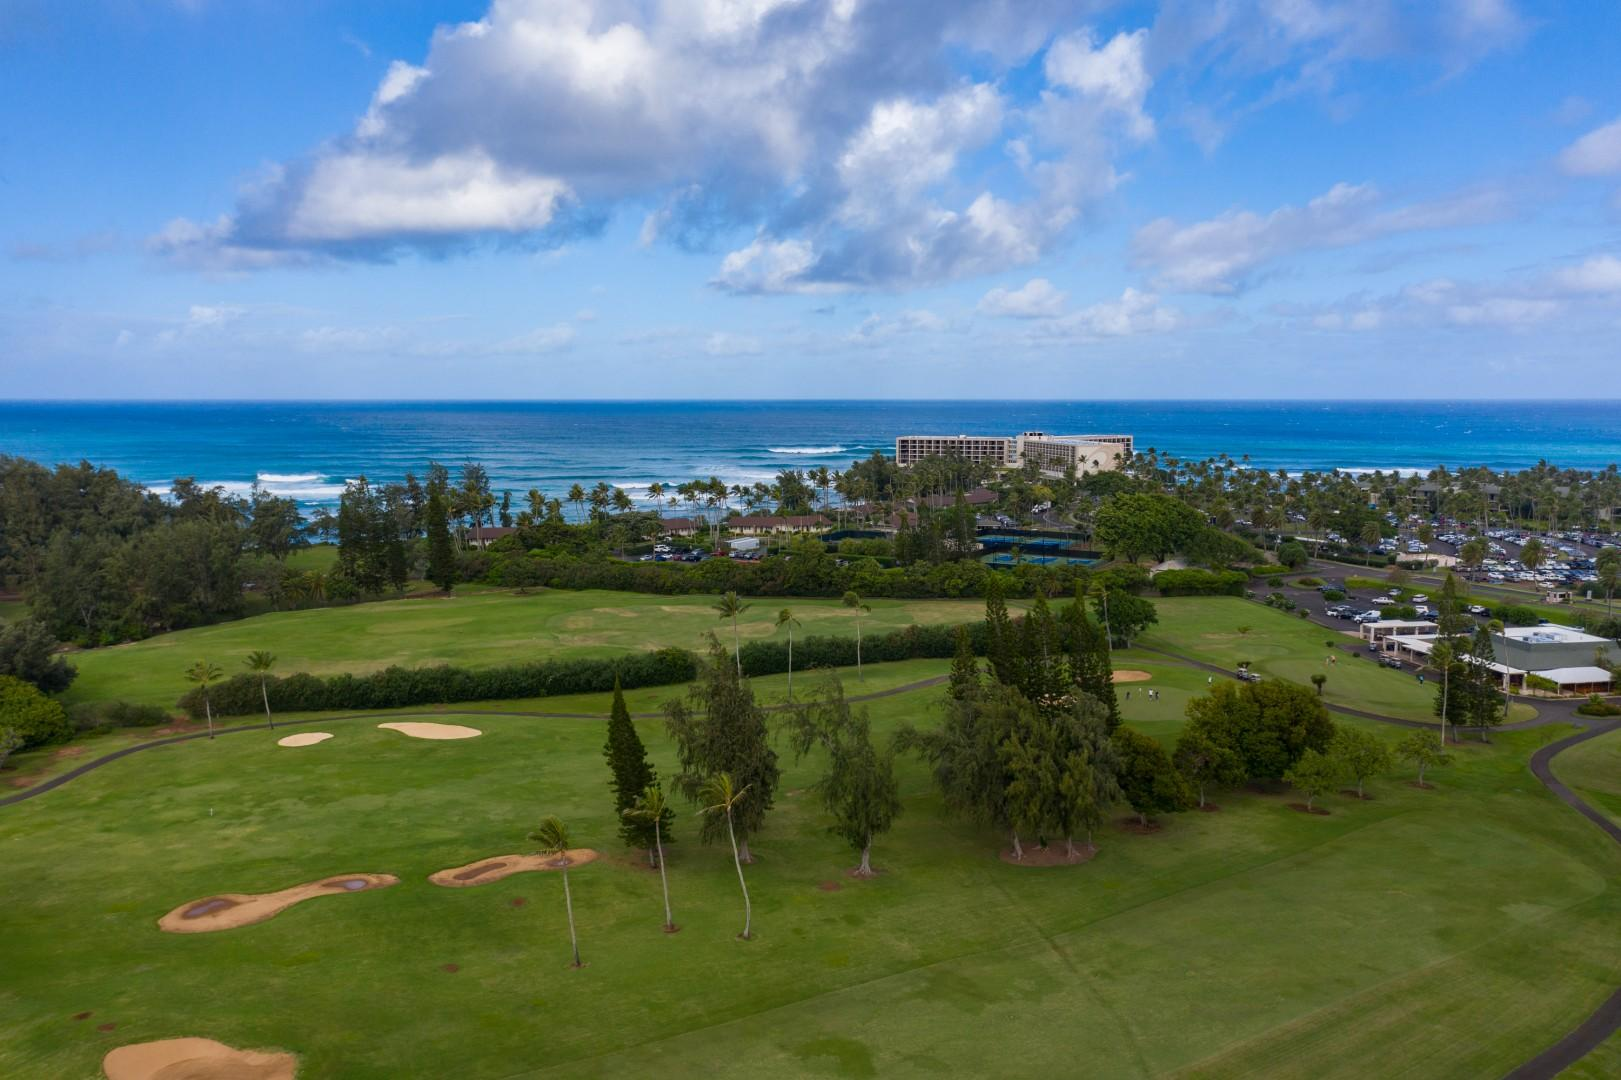 Easy access to golf and beaches